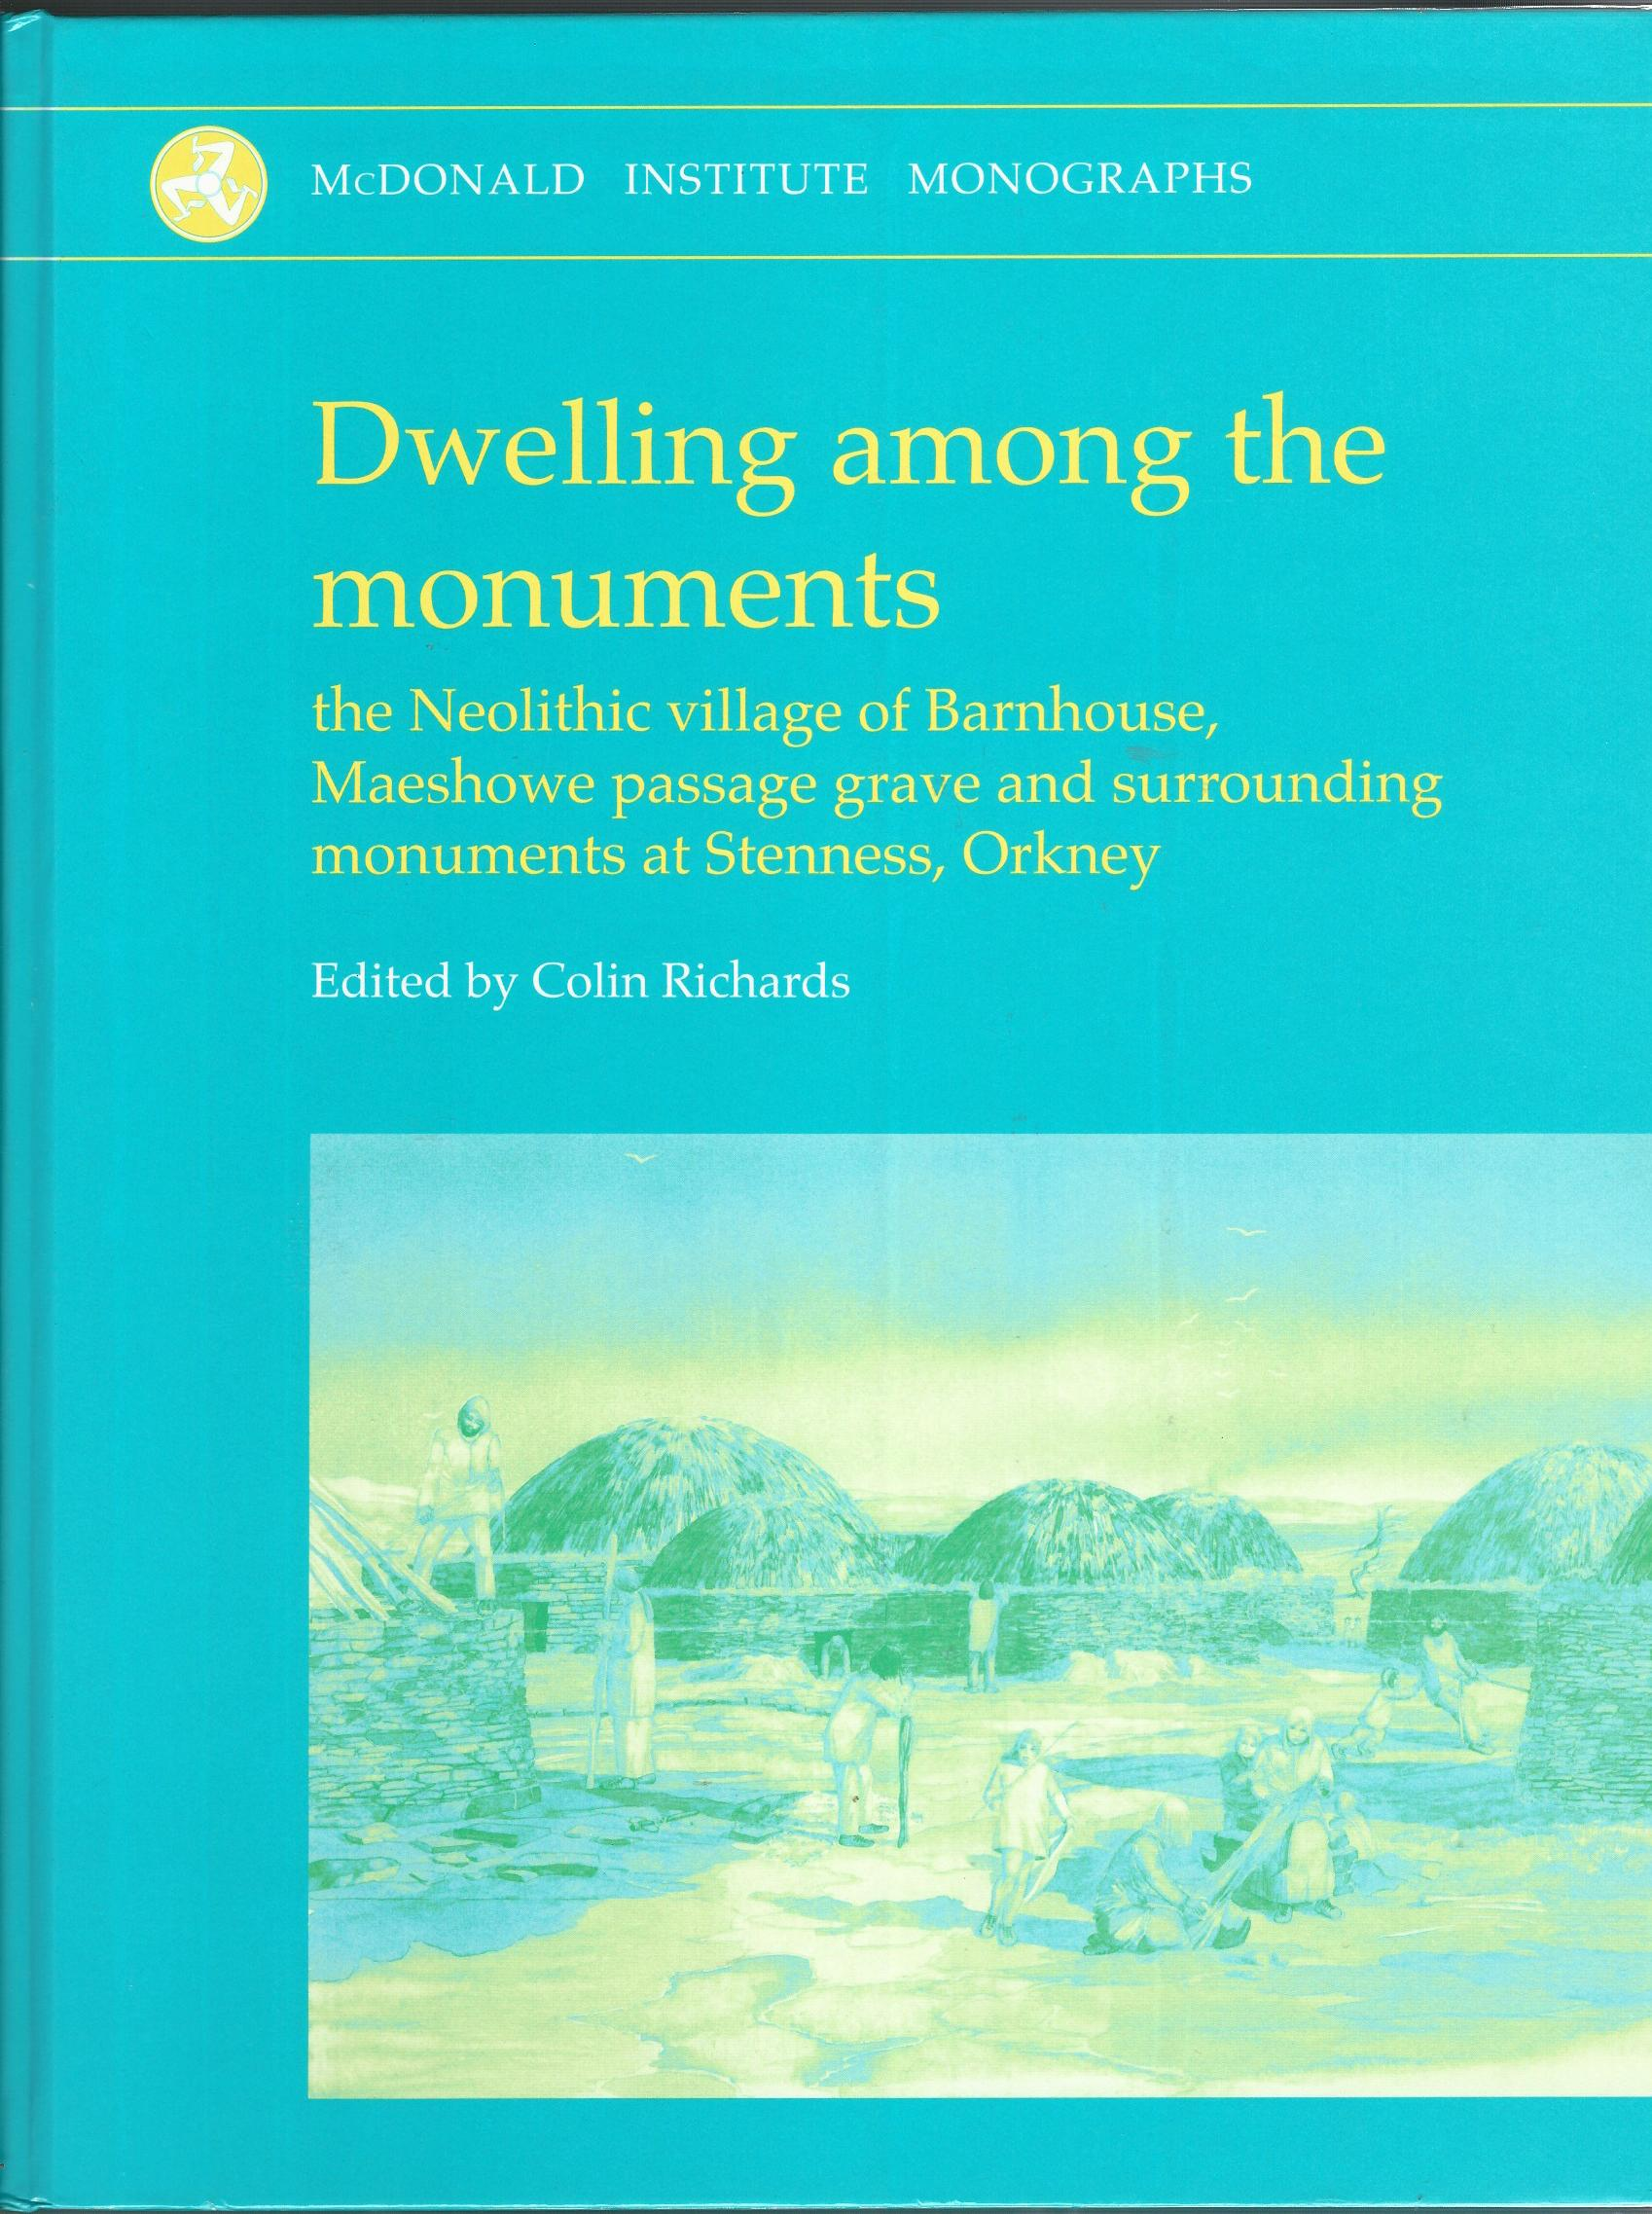 Image for Dwelling Among the Monuments: The Neolithic Village of Barnhouse, Maeshowe Passage Grave and Surrounding Monuments at Stenness, Orkney (McDonald Institute Monographs)